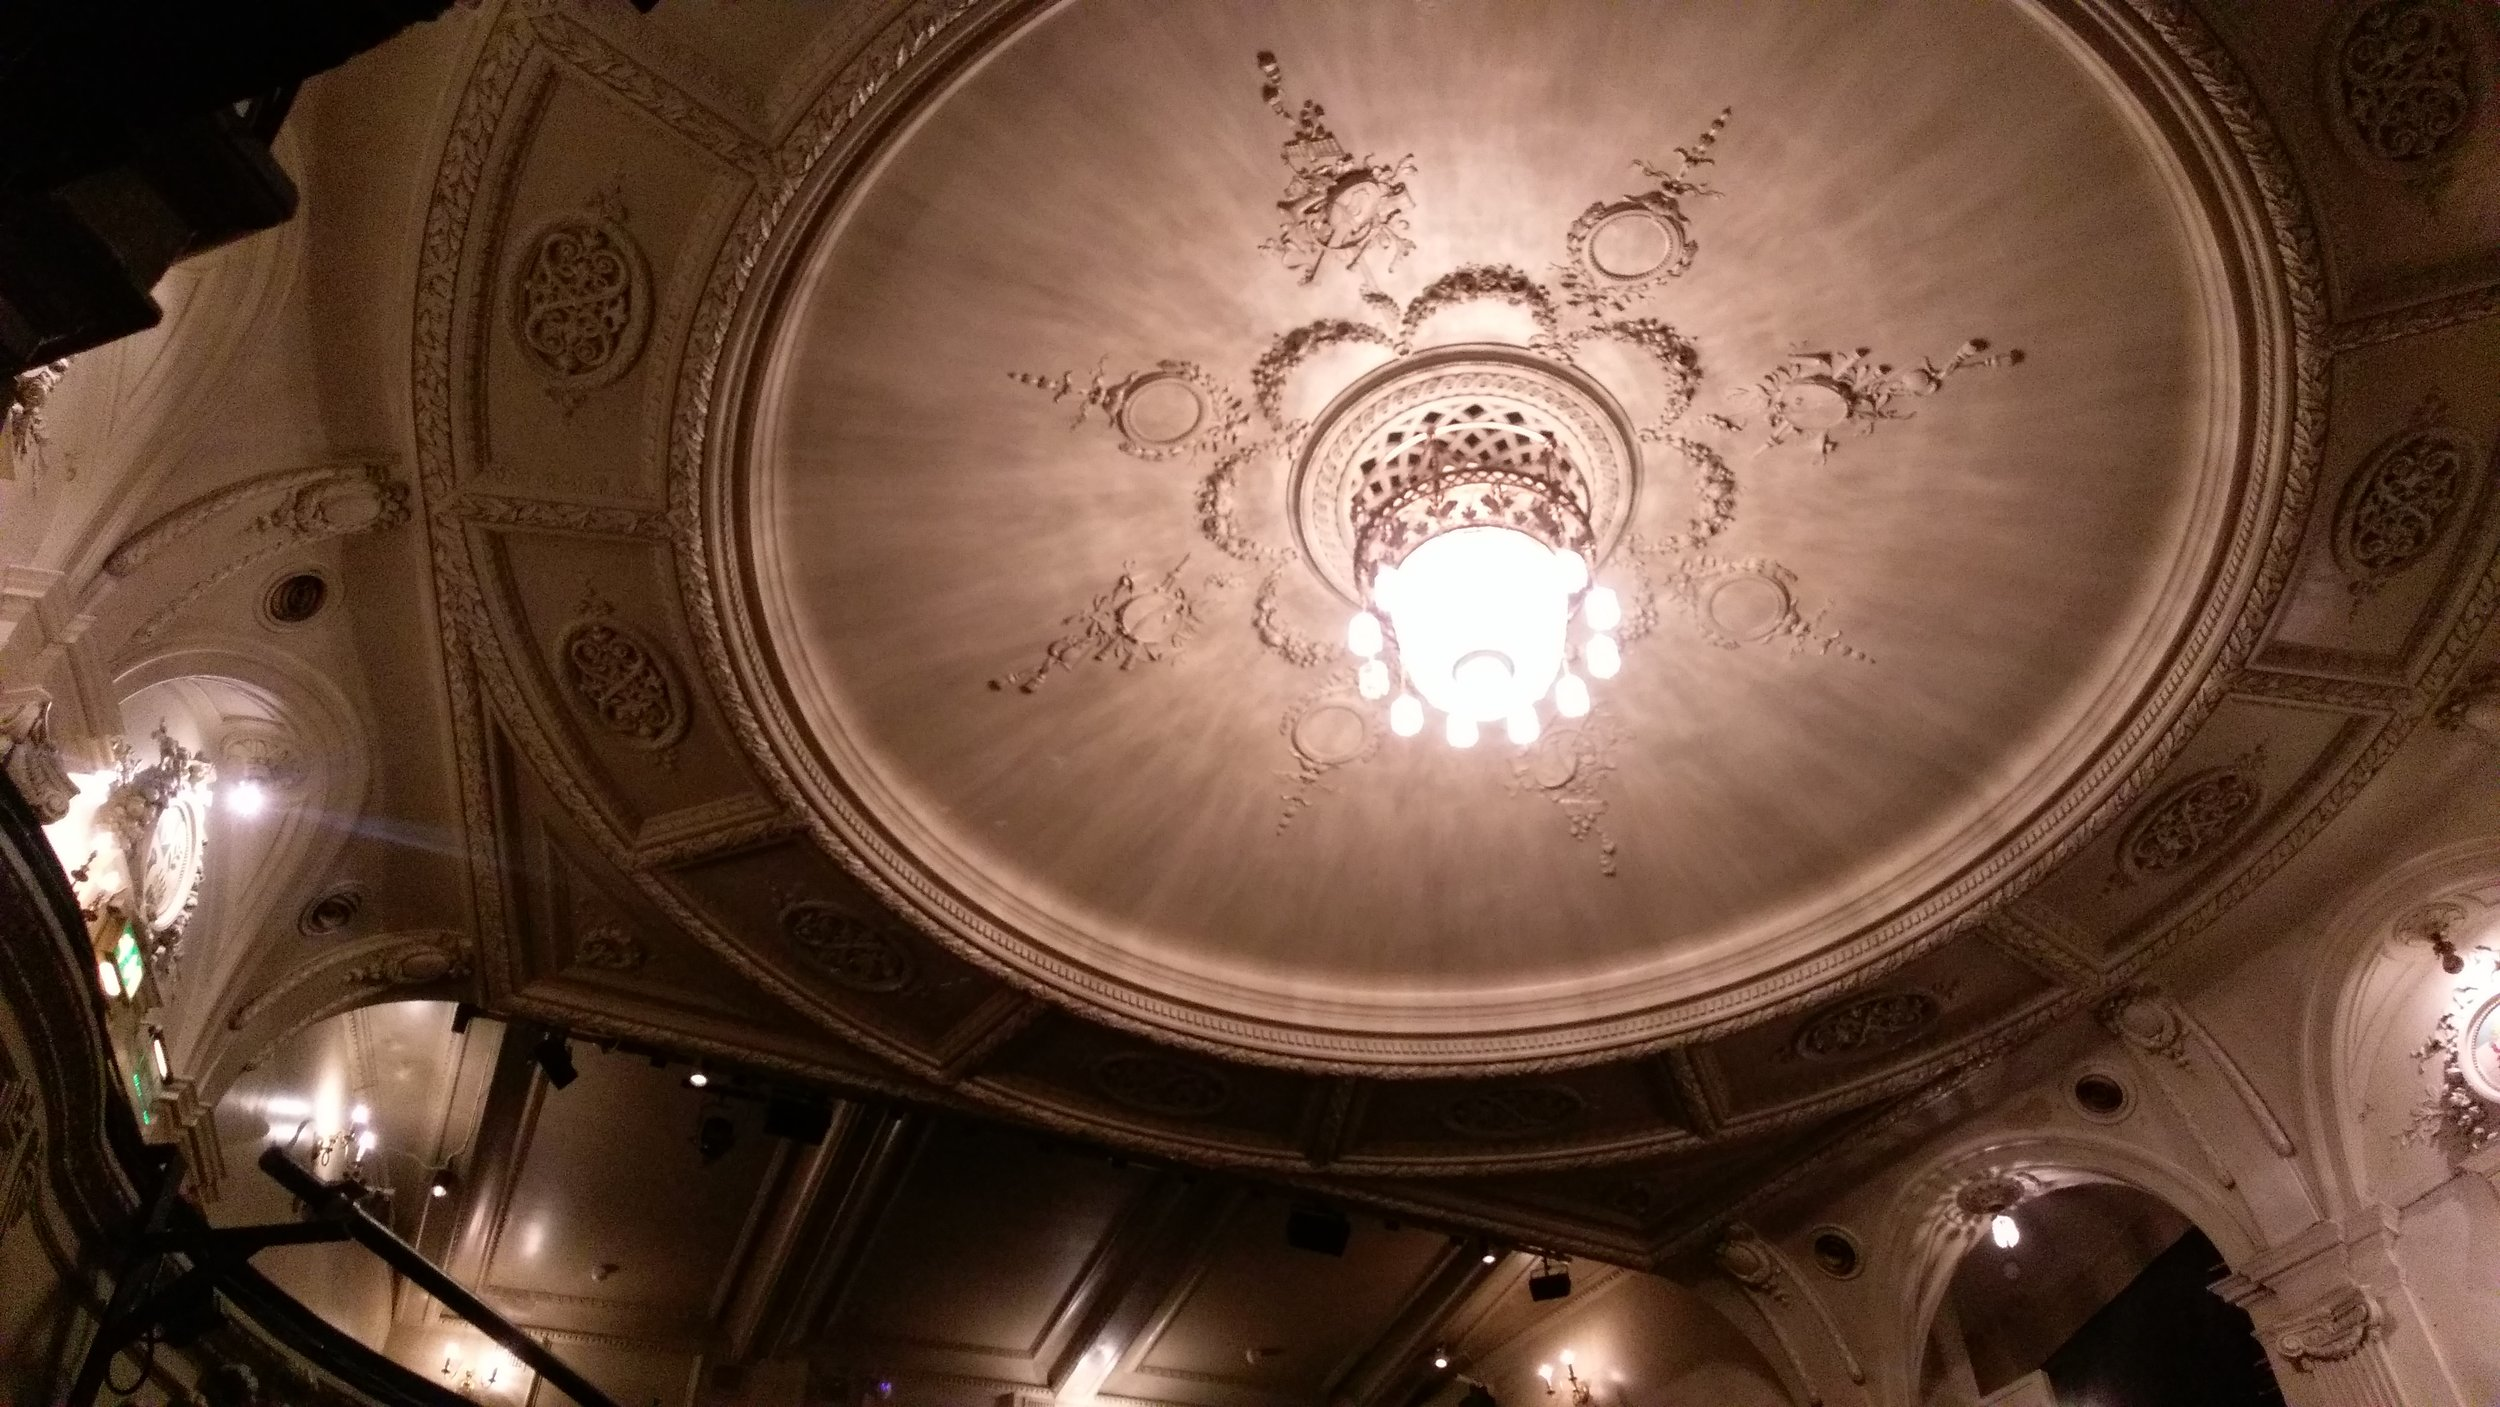 The royal icing ceiling at the Ambassadors Theatre